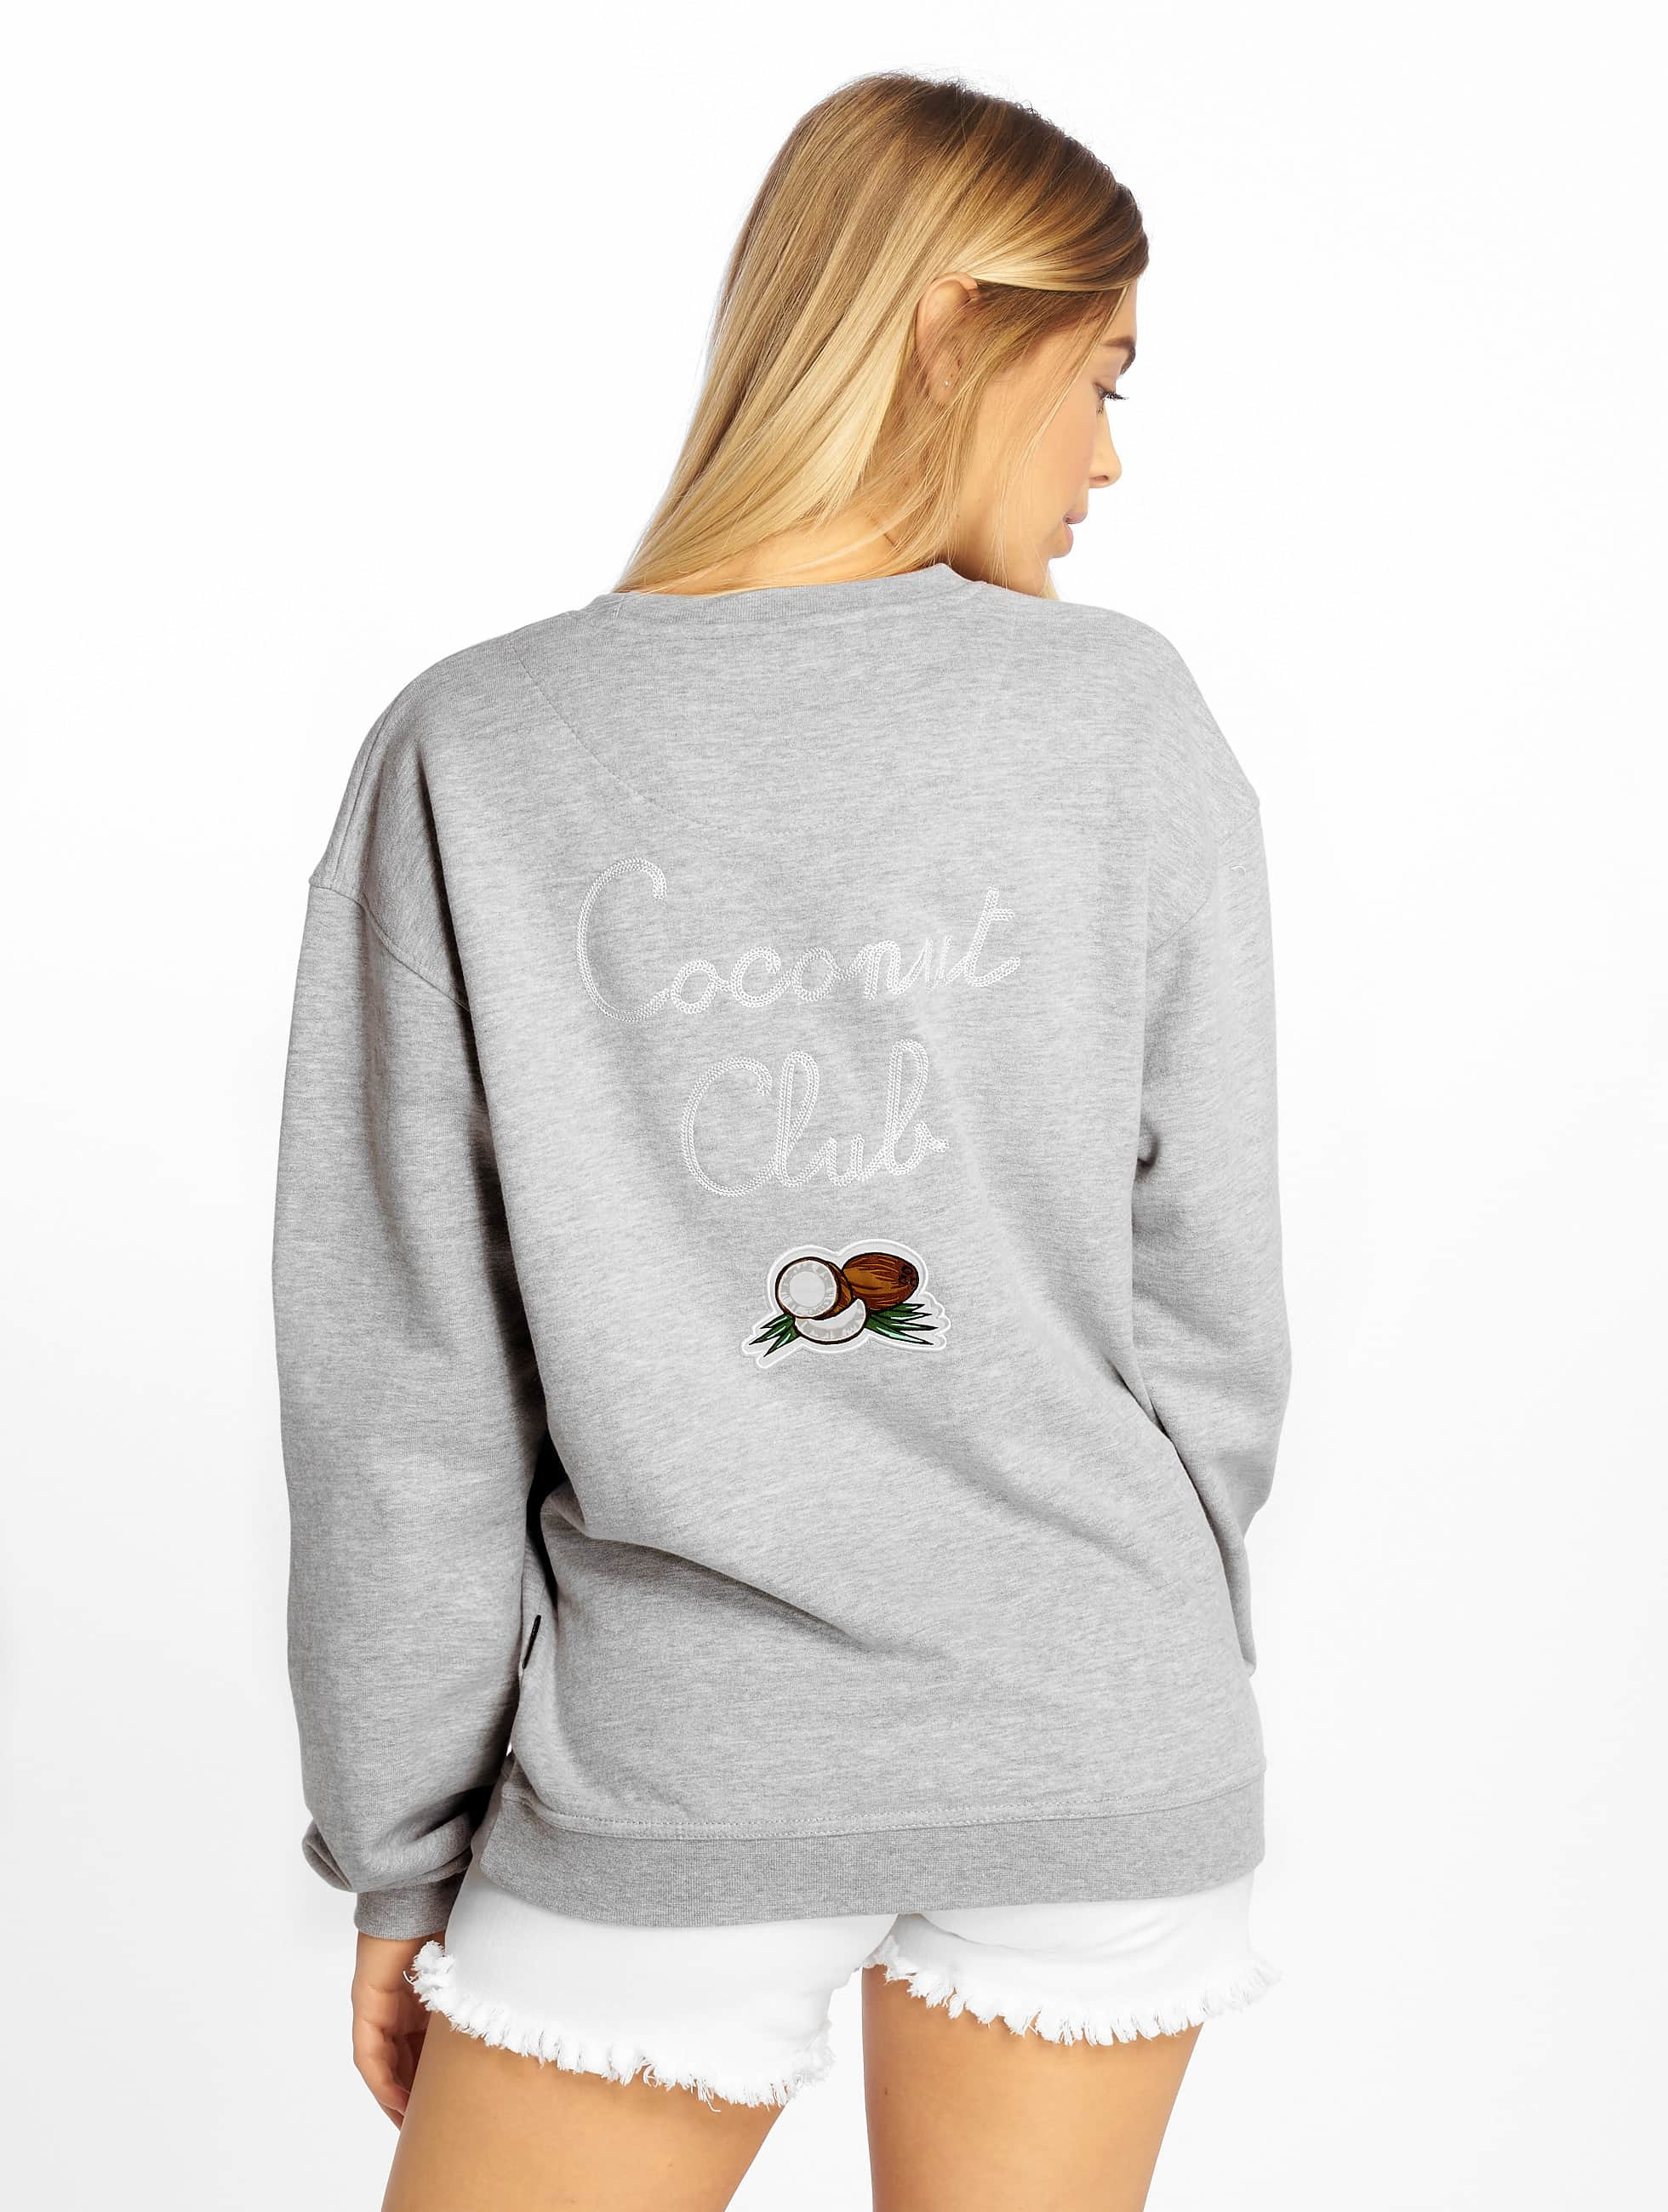 Just Rhyse / Jumper Coconut Club in grey XS